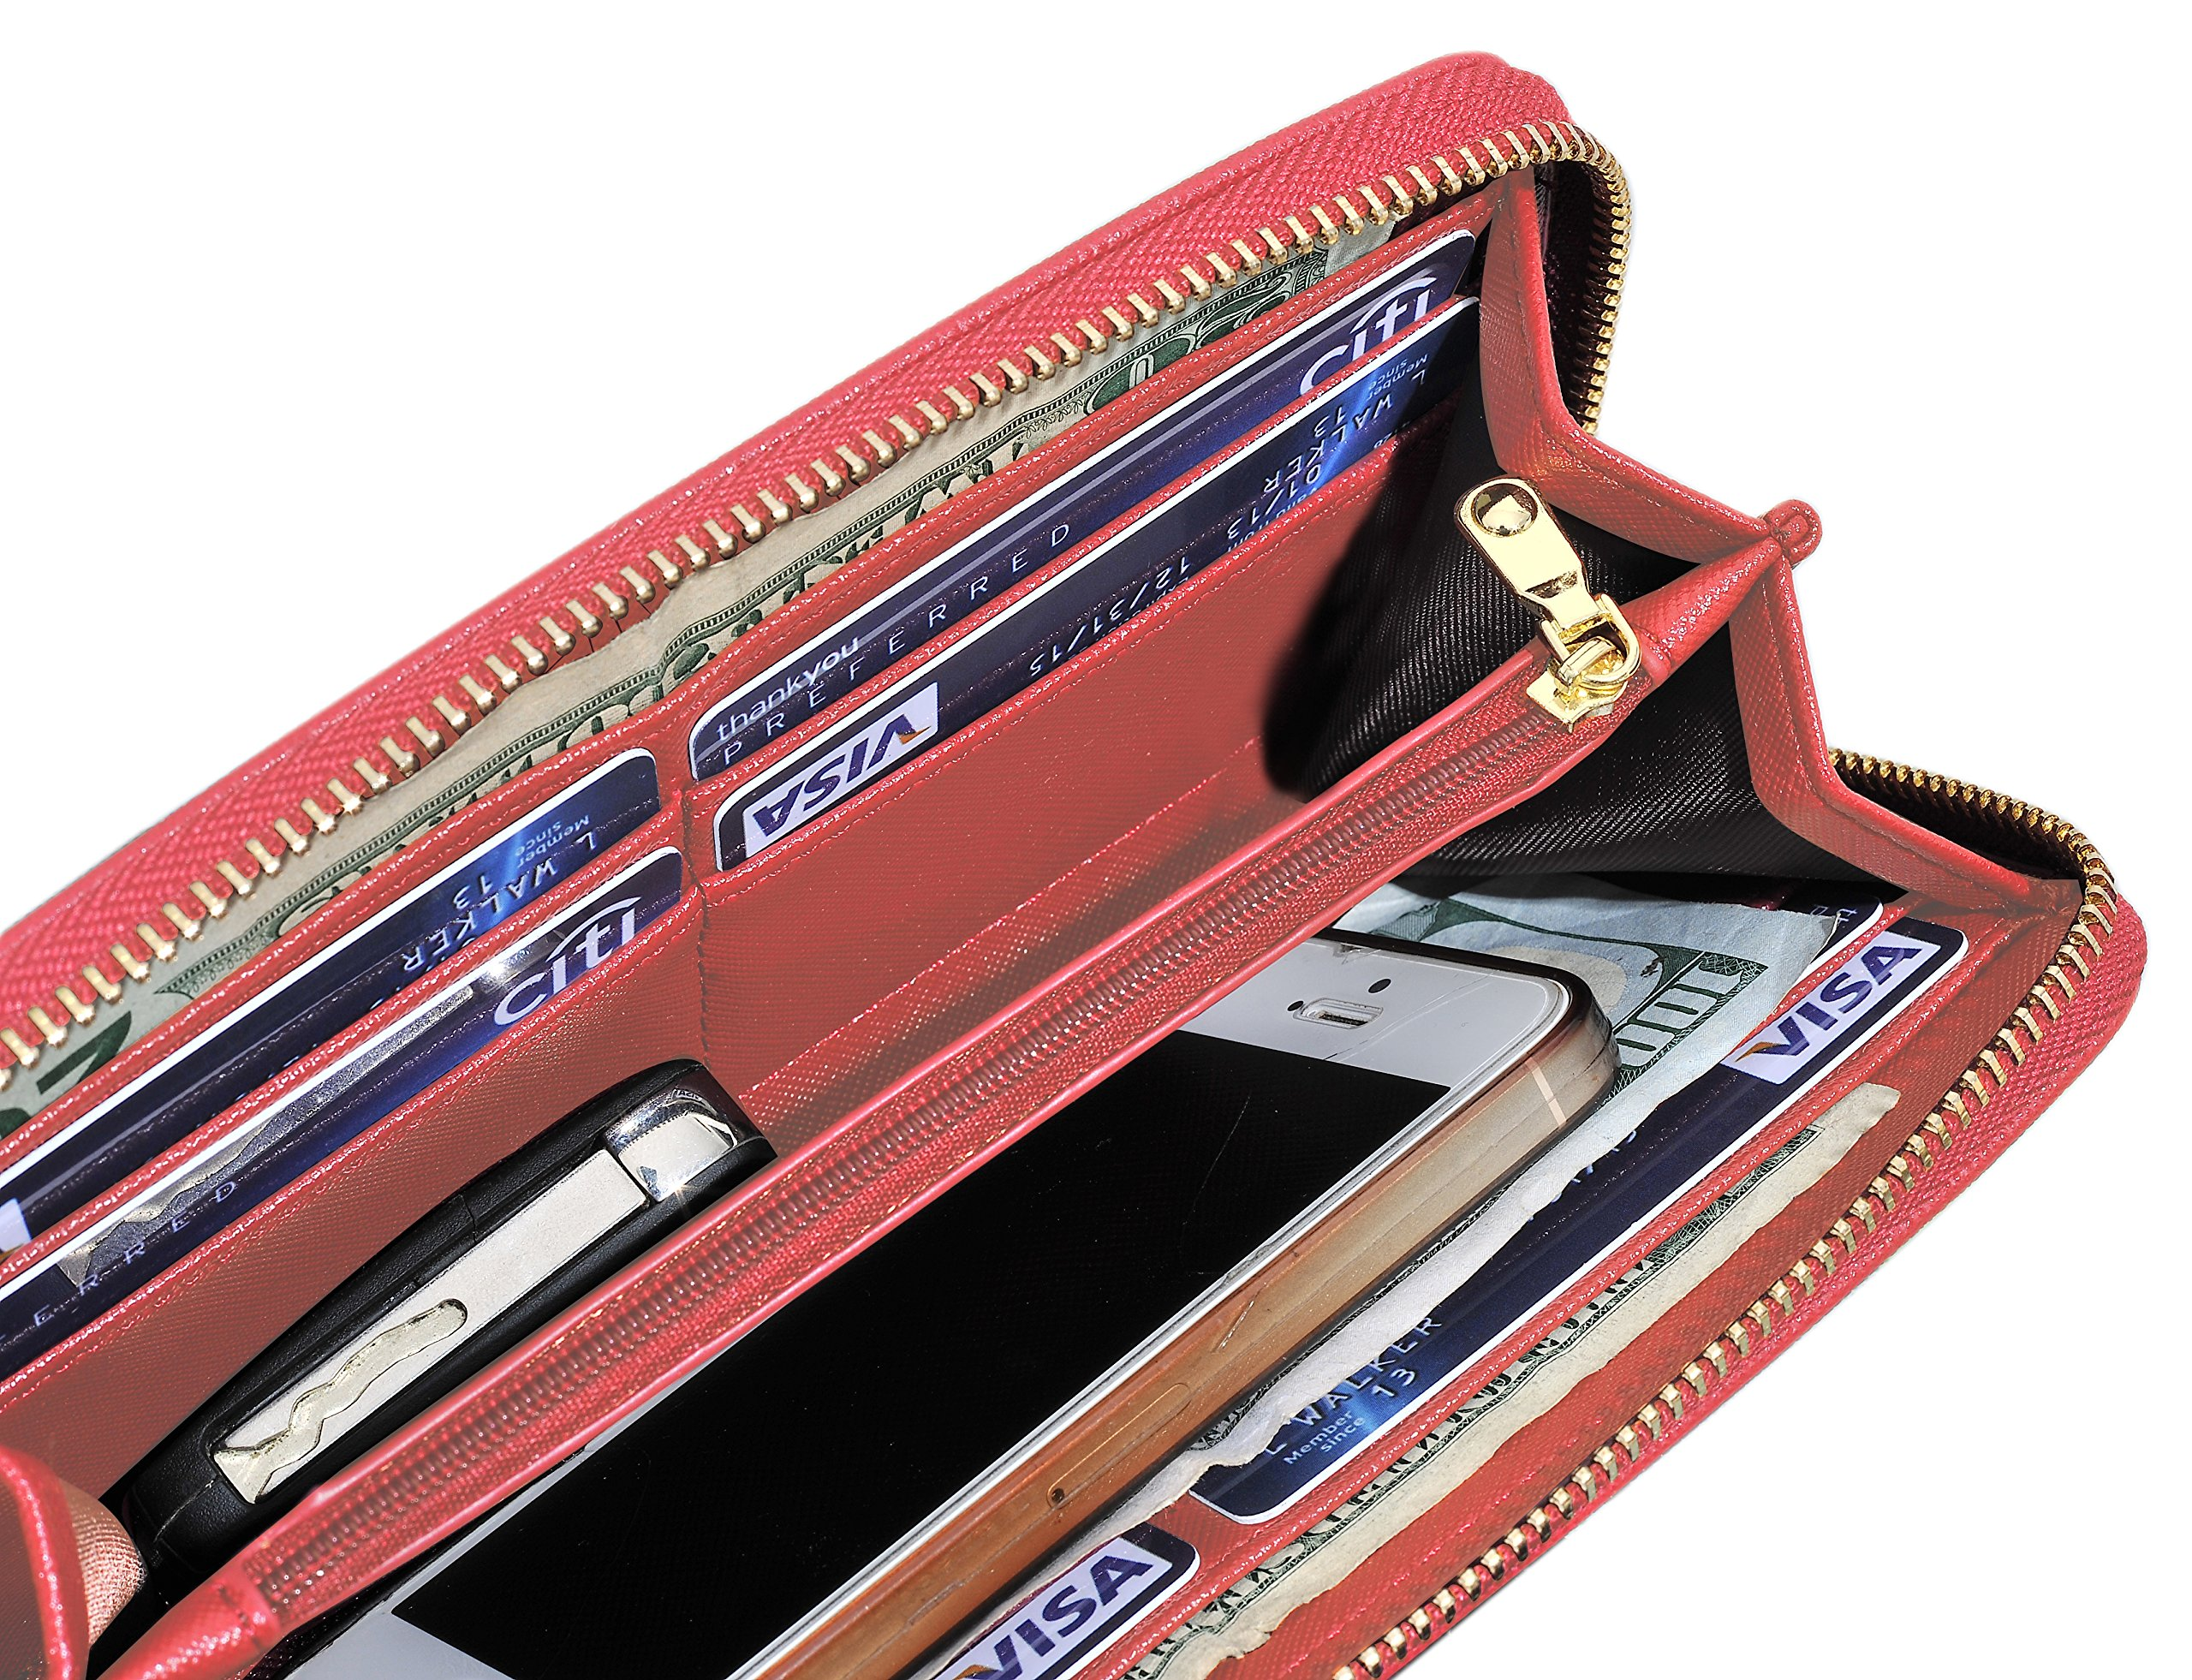 Womens Leather Wallet Clutch Long Zipper Wallets with Wrist Strap Card Holder (Red - New) by Yuhan Pretty (Image #4)